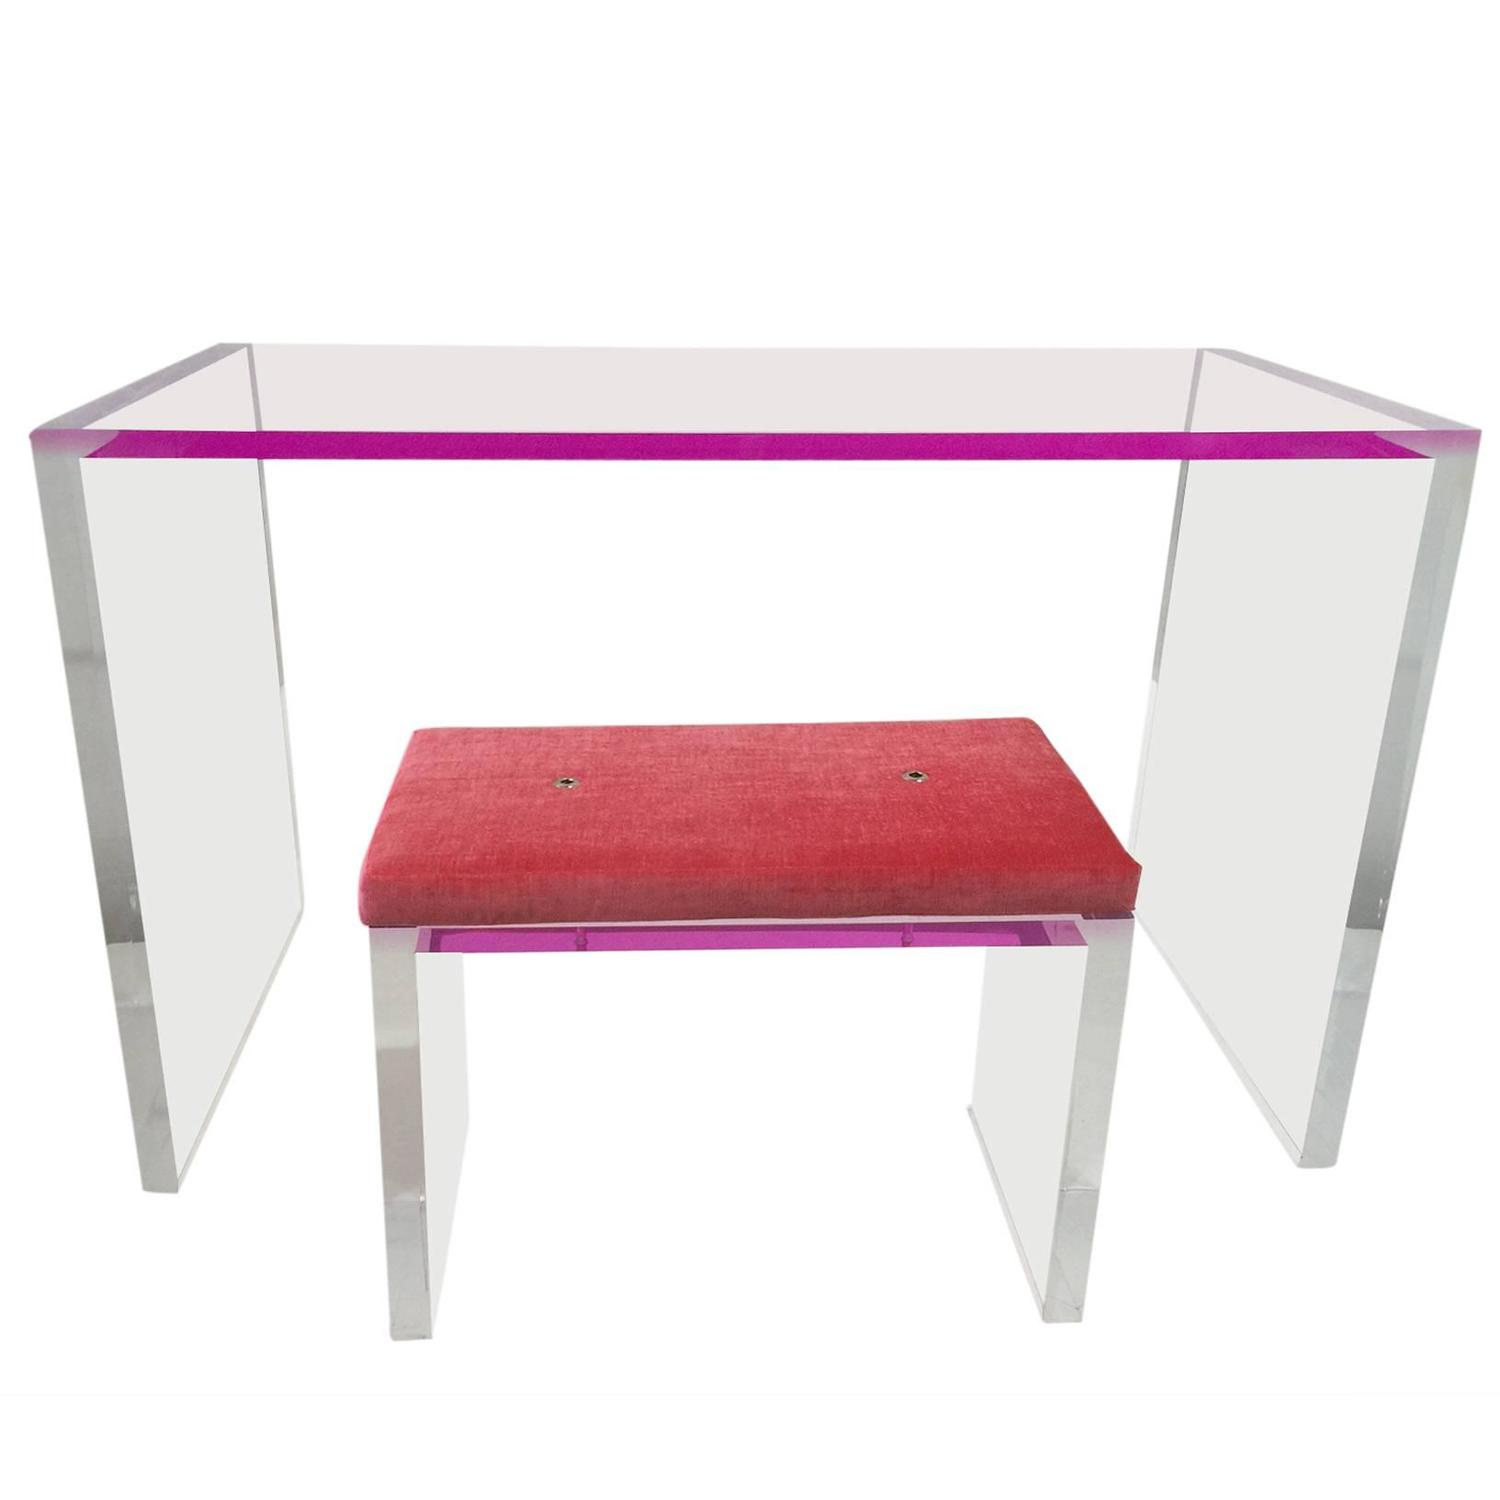 Whimsical Pink And Clear Acrylic Desk And Bench For Sale. Modern Desks With Drawers. Student Working At Desk Clipart. Kirklands Coffee Tables. Wall Desk Ikea. Cost To Move A Pool Table. Gray Bedside Table. Pencil Drawers. Lightweight Folding Table